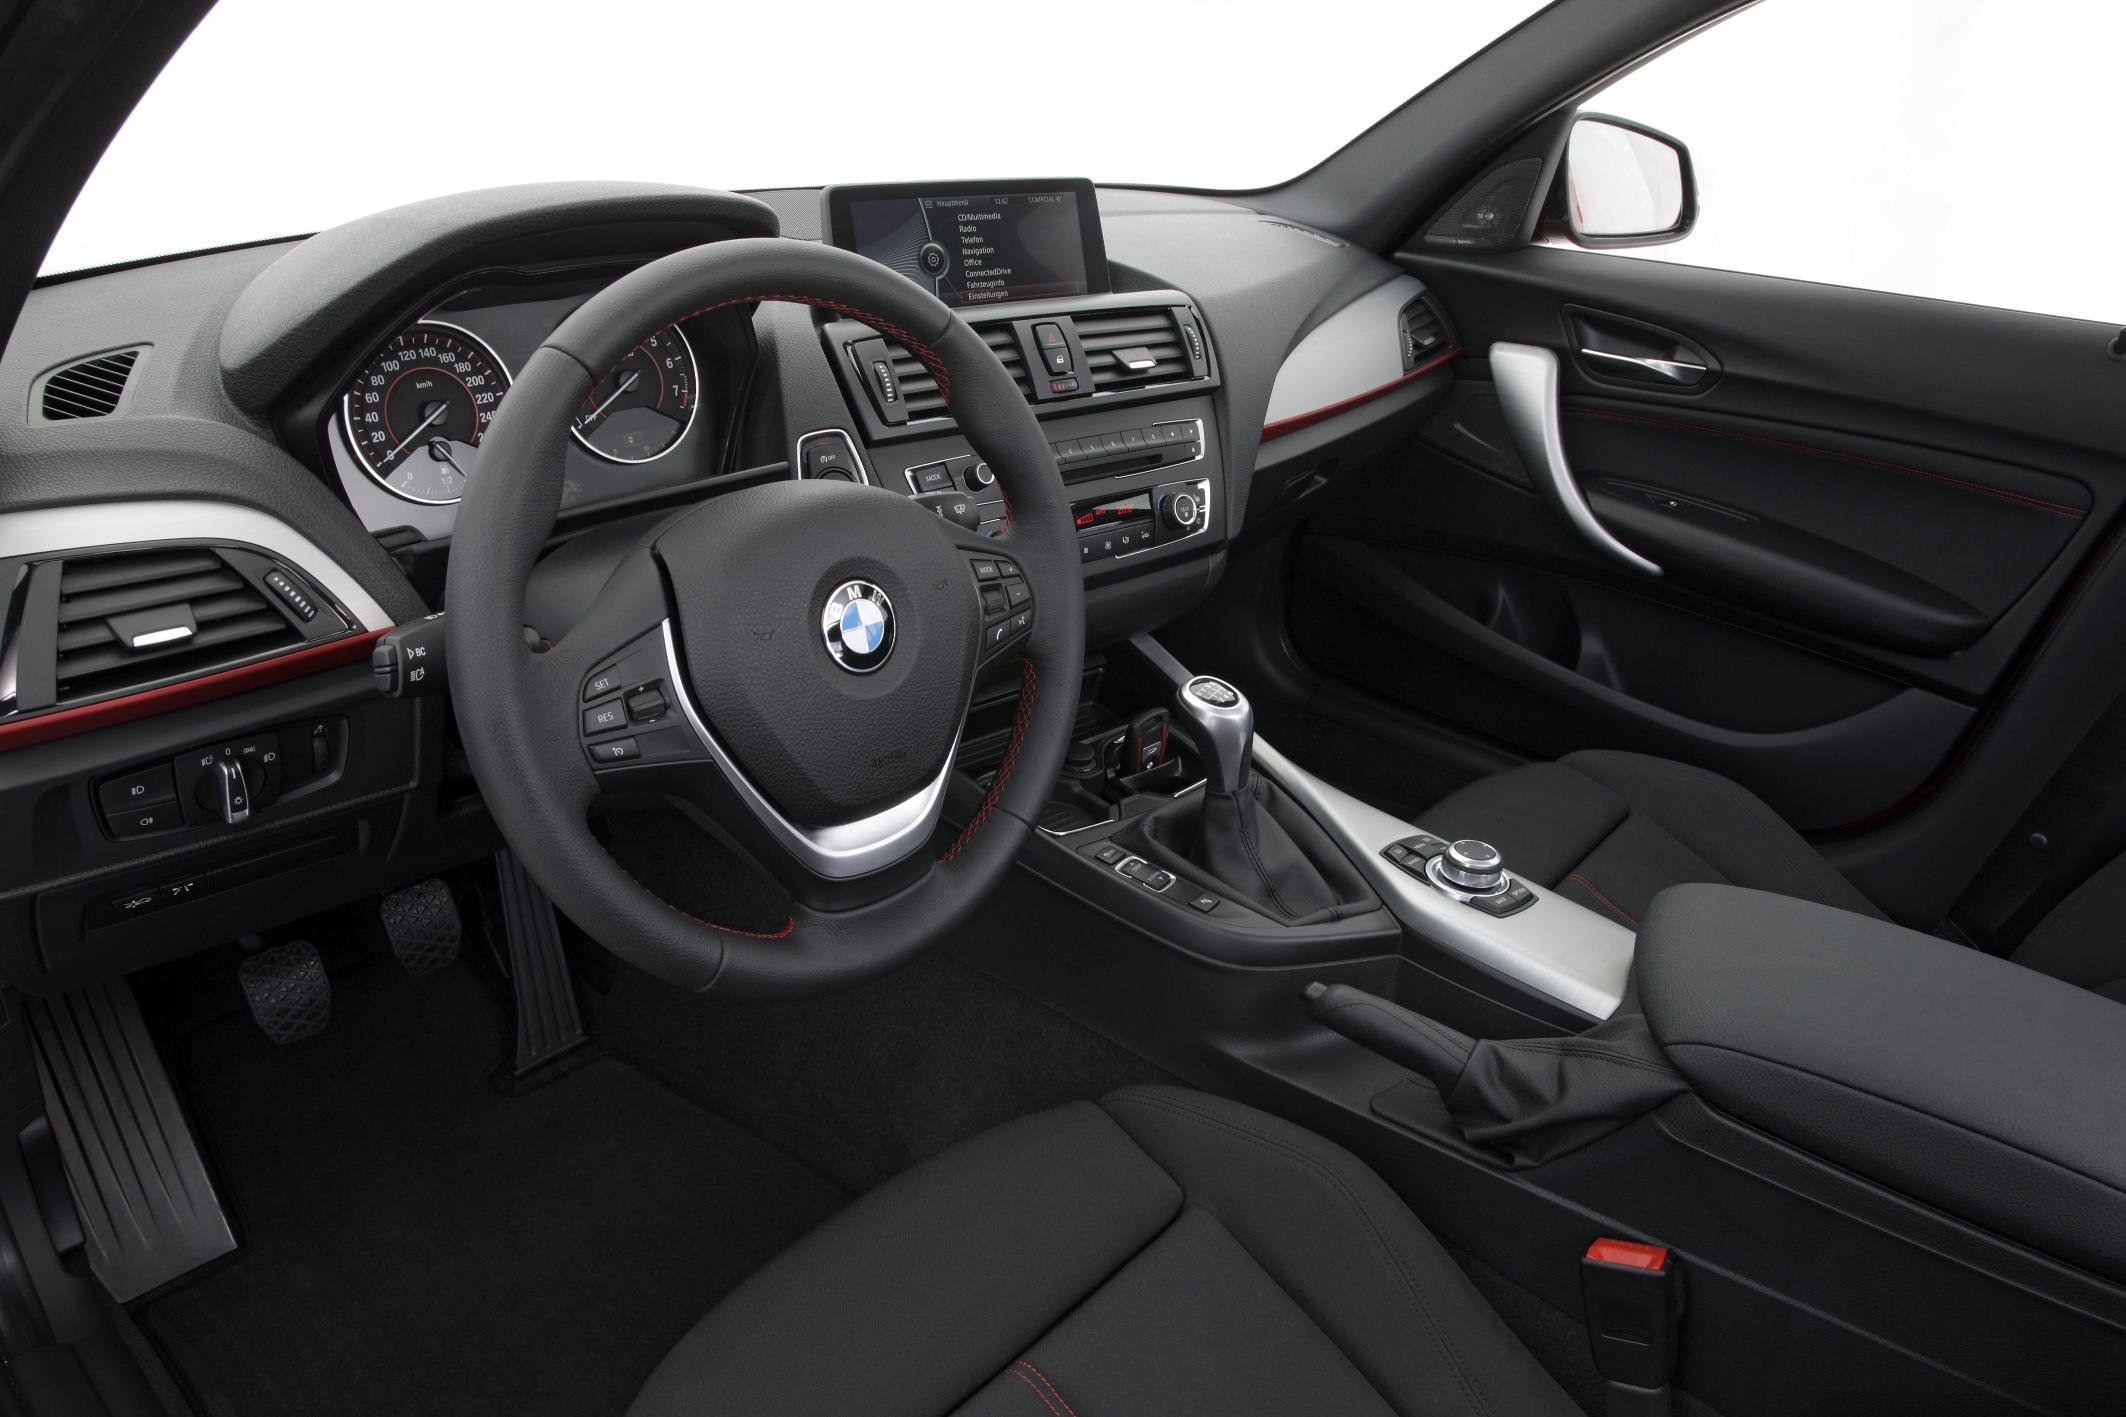 BMW 1 Series interior #1